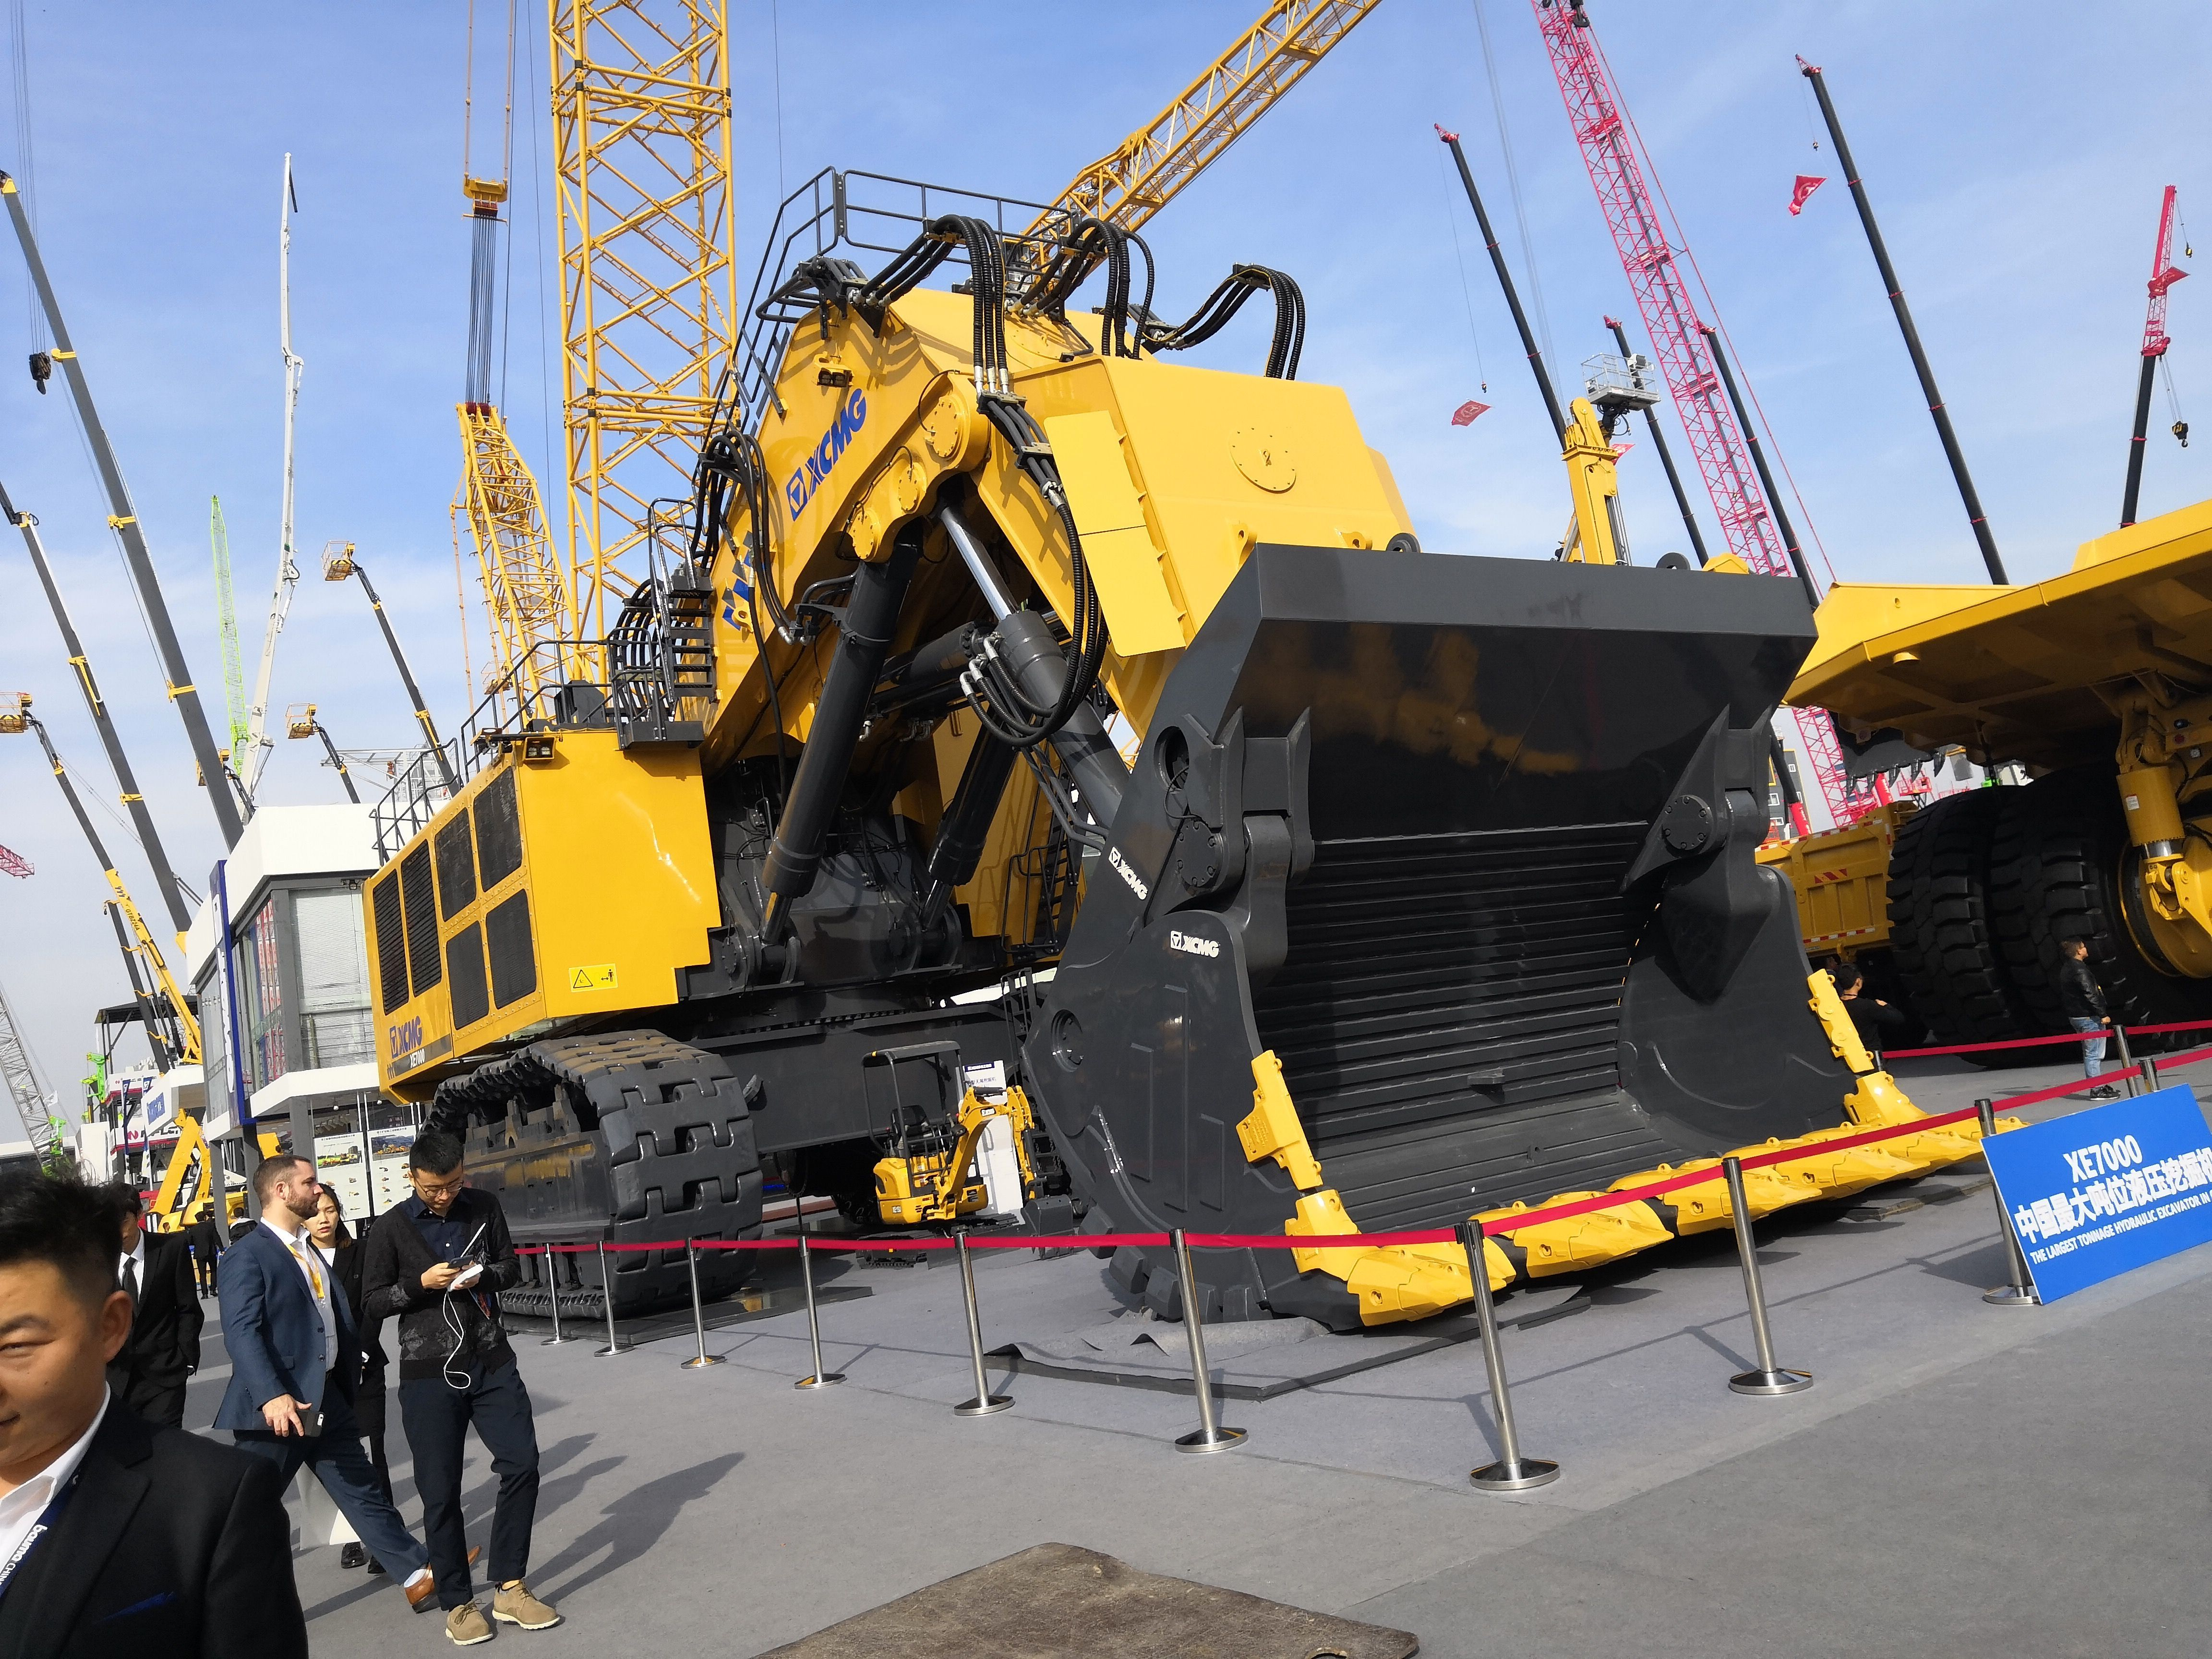 Wow! Biggest excavator in China, XE7000 by XCMG  I believe